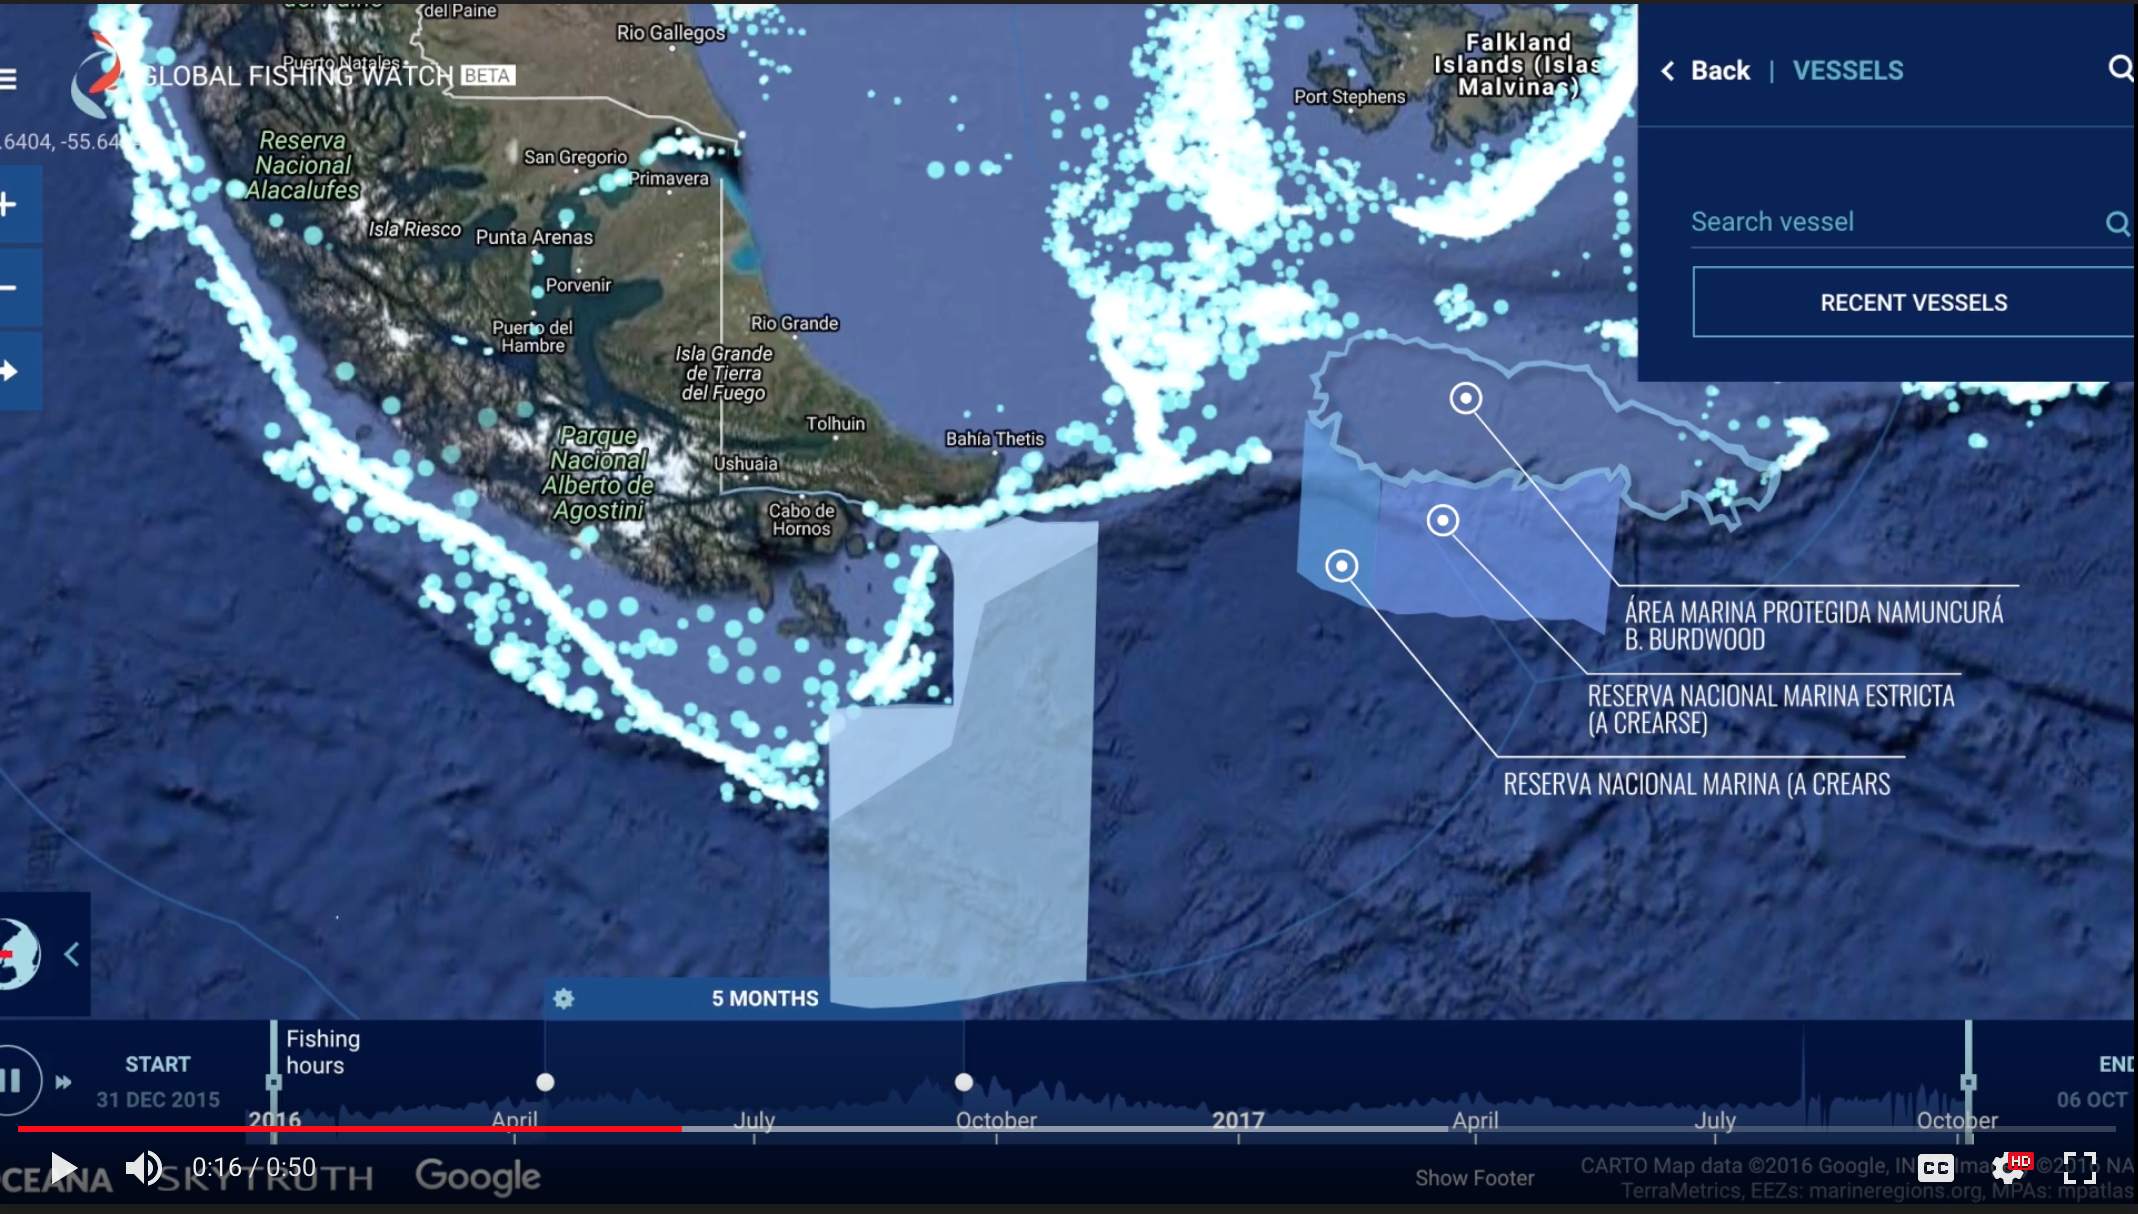 Making the Case for Argentine MPAs - Global Fishing Watch